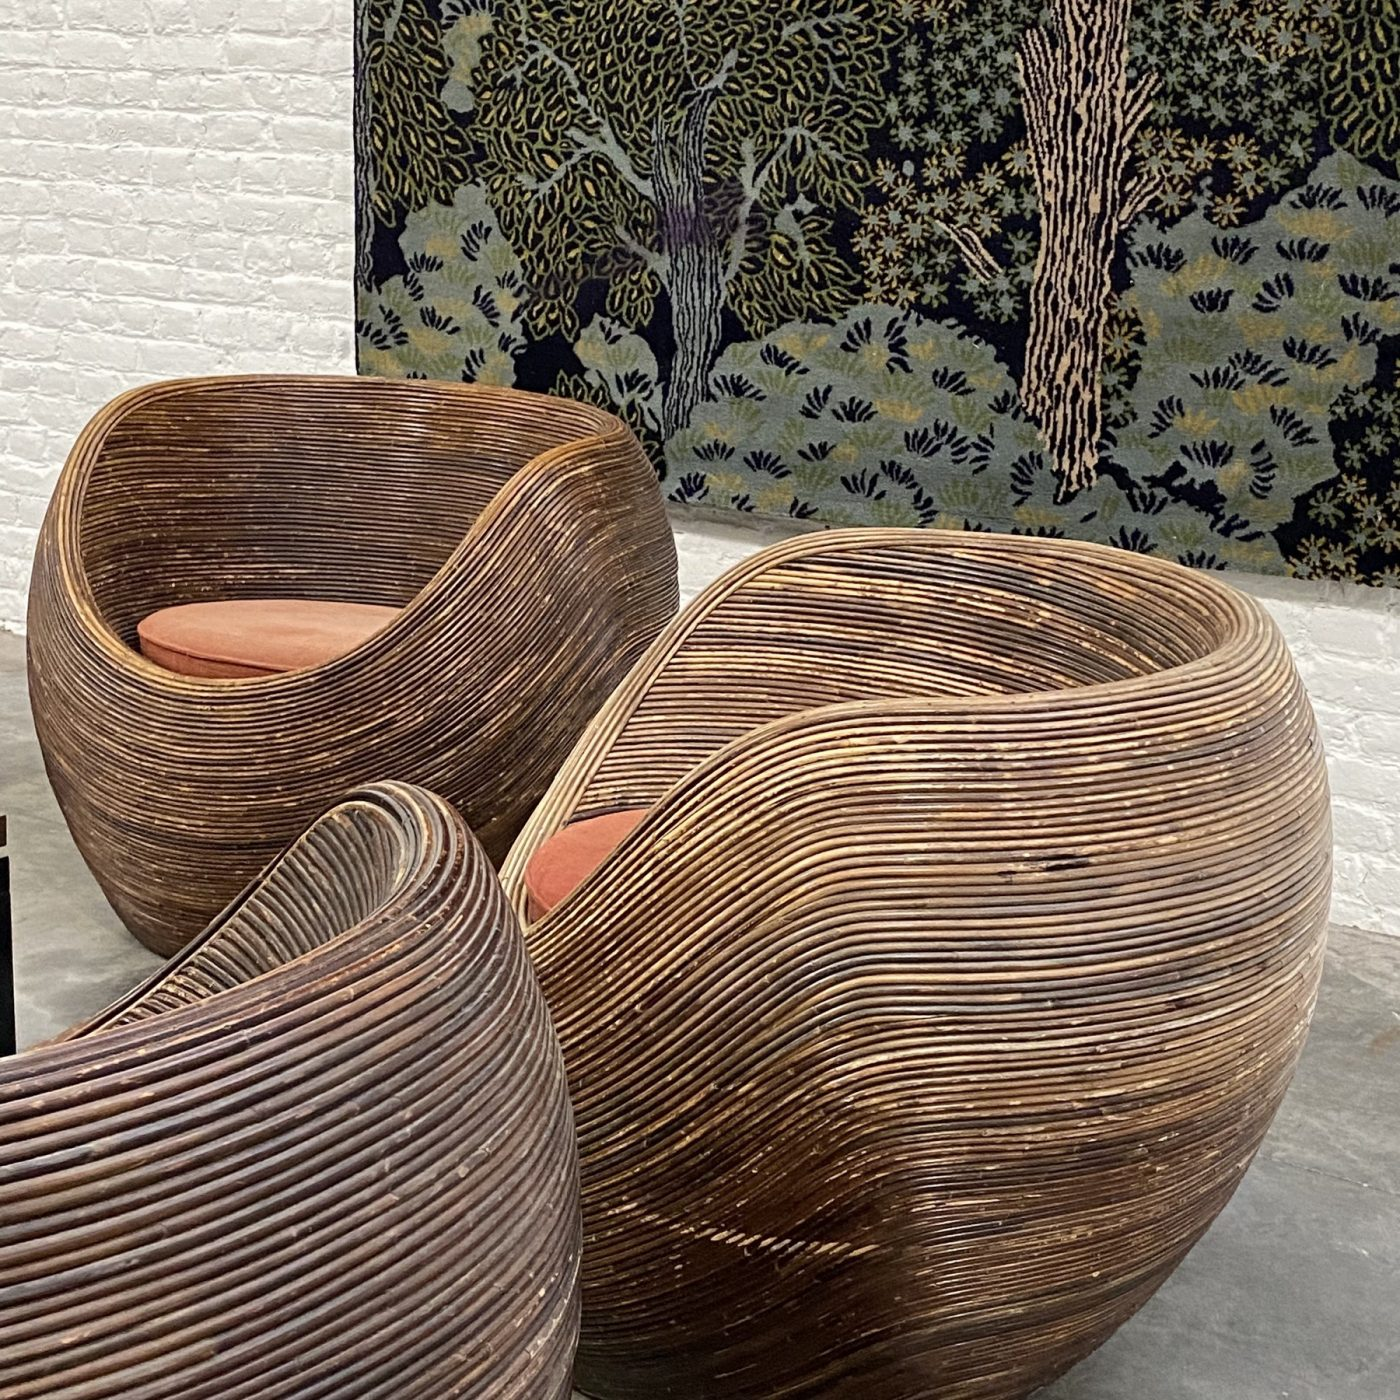 objet-vagabond-bamboo-chairs0007